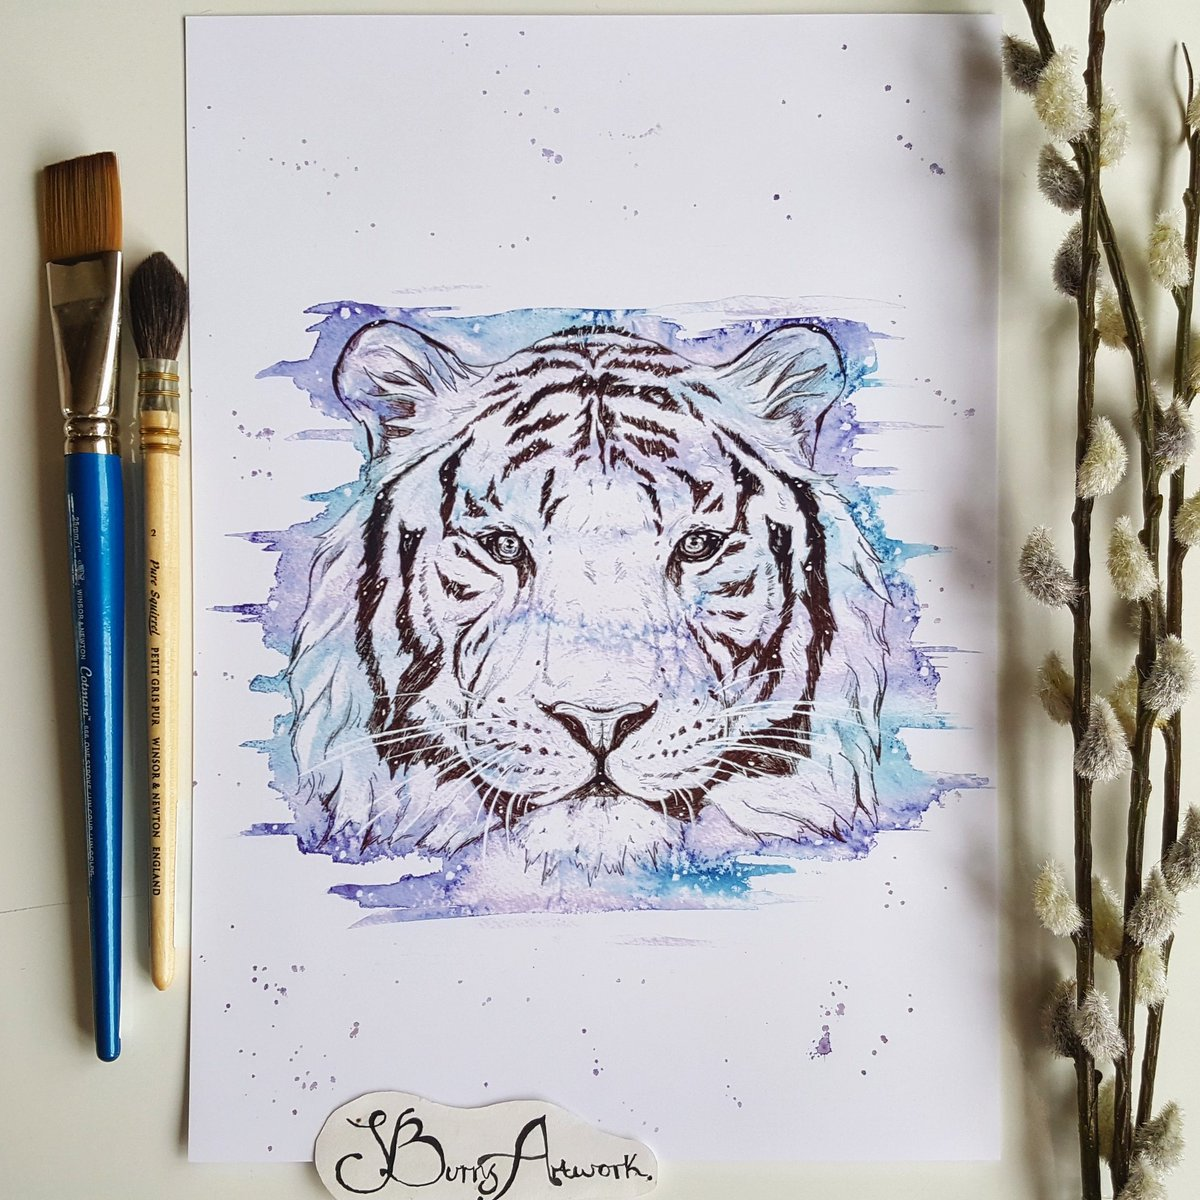 It&#39;s #charitytuesday Please donate to @WWF to help save tigers and other endangered species. #savetheplanet  Shop-   https://www. etsy.com/uk/shop/Sburns Artwork &nbsp; … <br>http://pic.twitter.com/FiKIpPvsVS